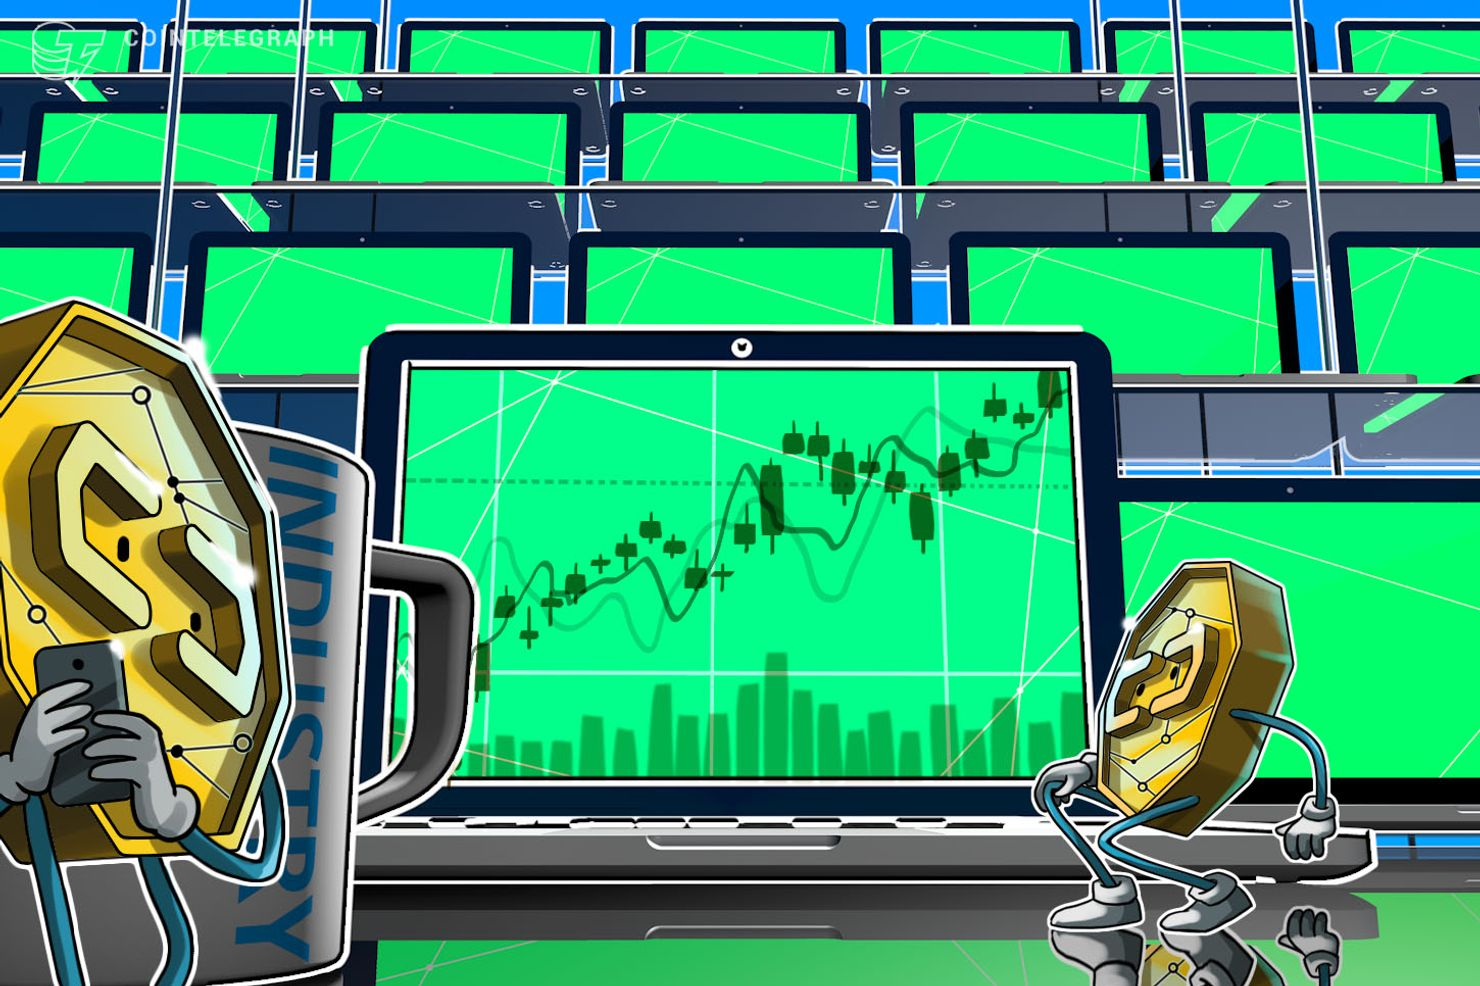 Bitcoin Hovers Nears $7K, as Wider Market Tips Back Into the Green